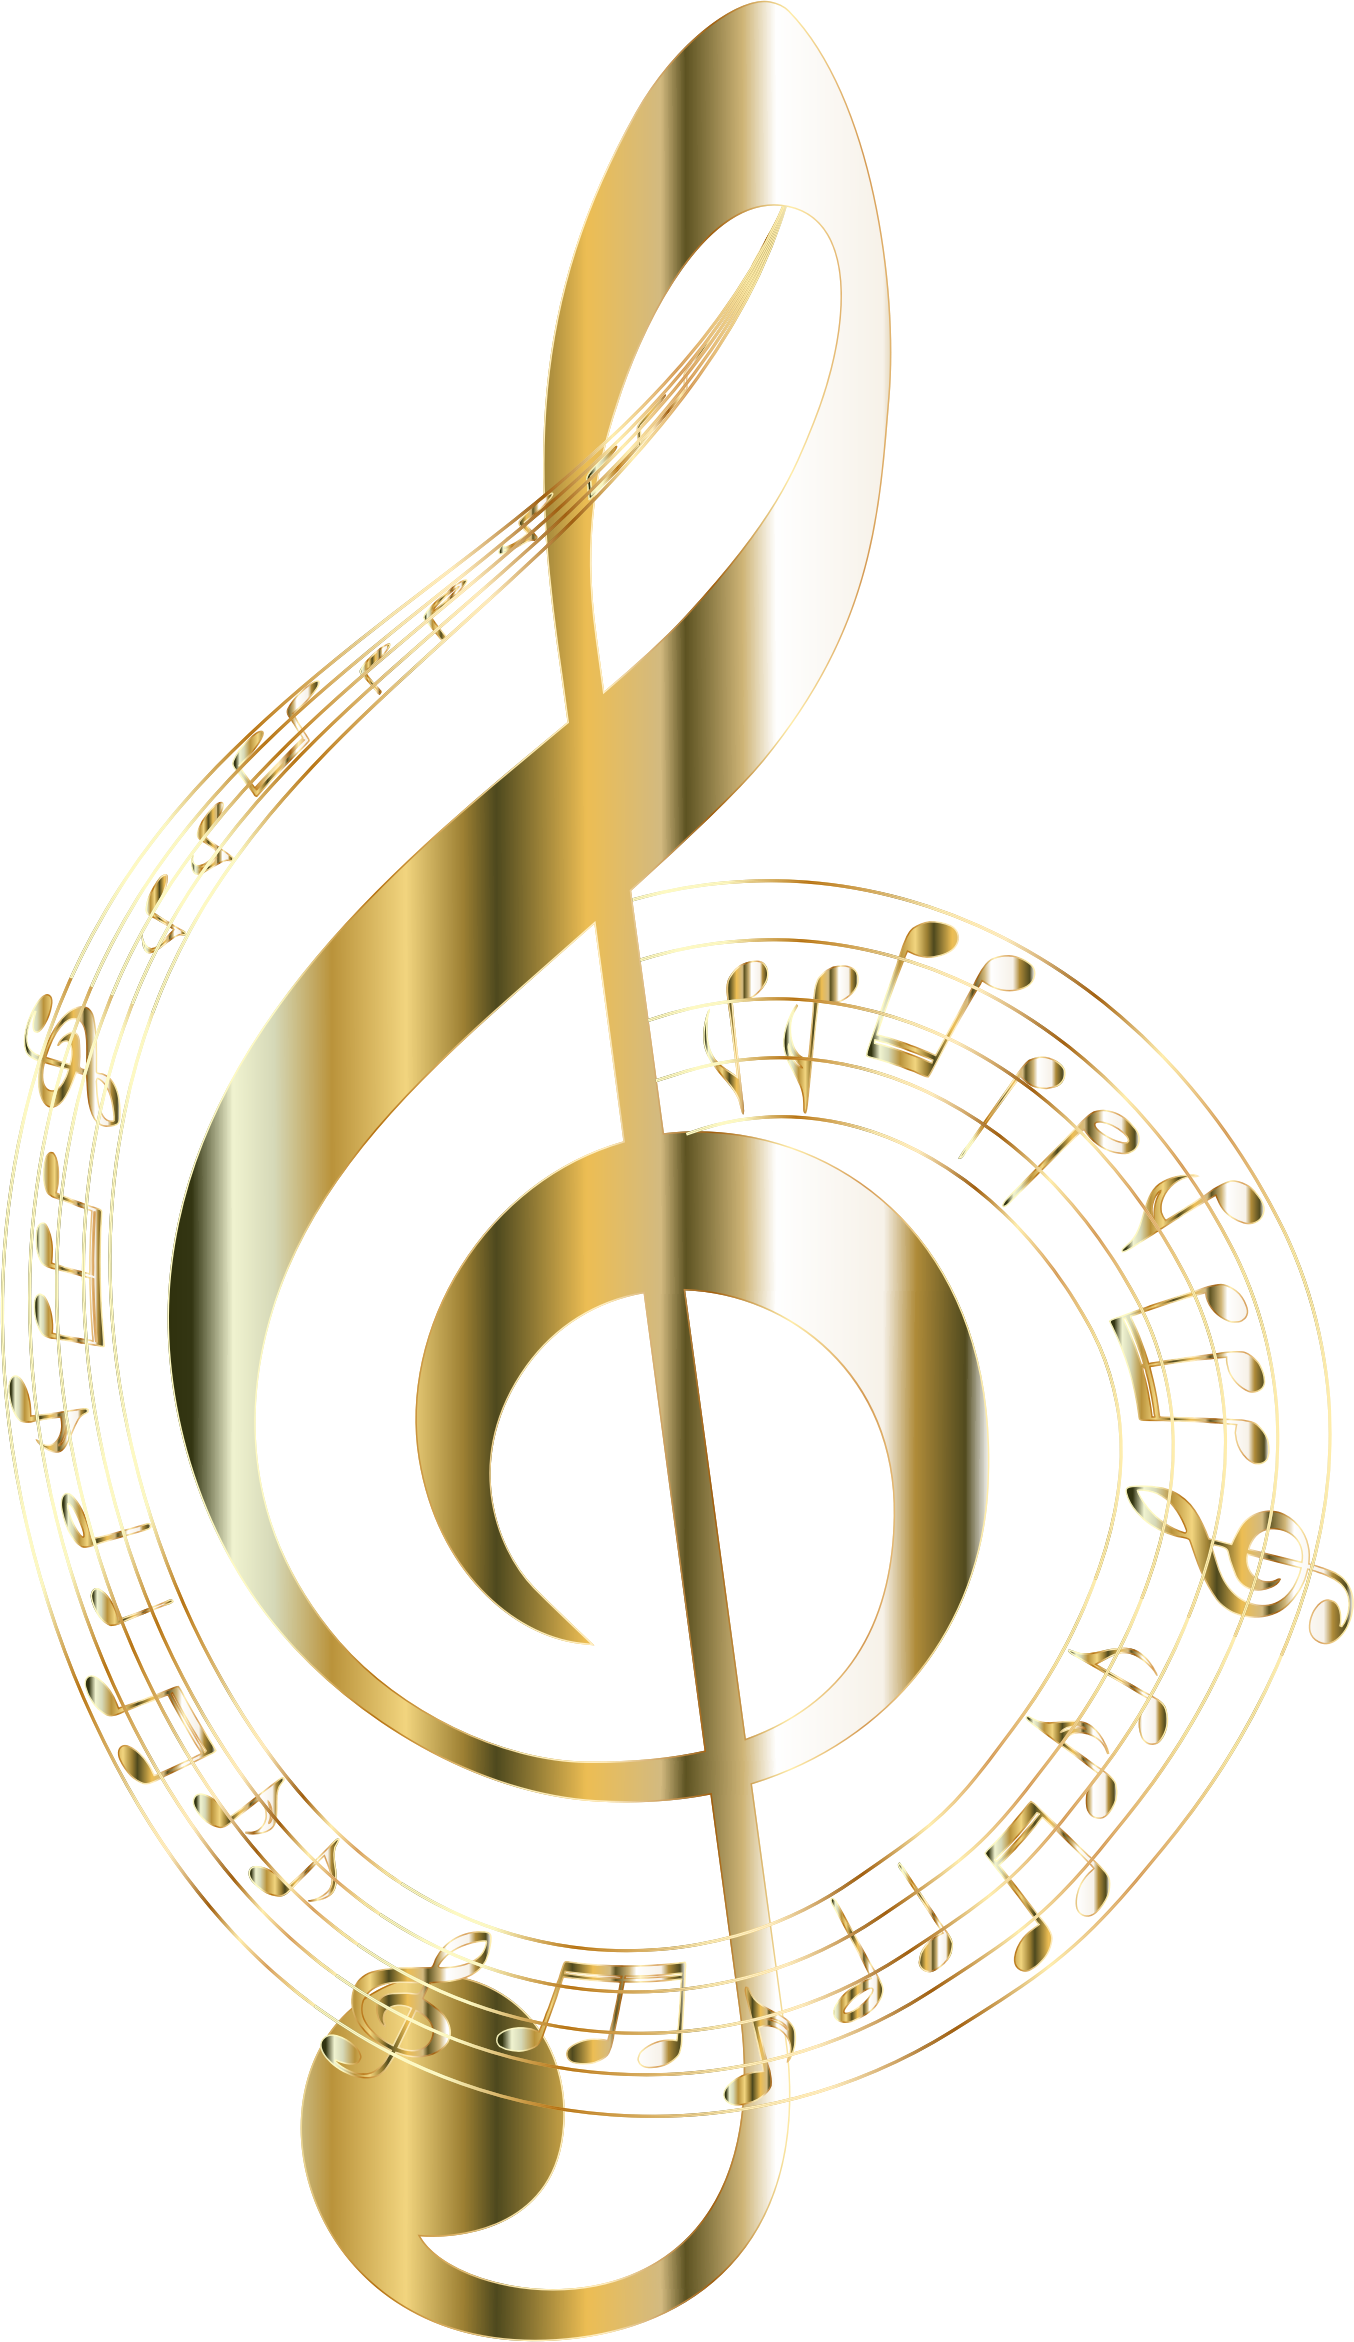 Clipart - Gold Musical Notes Typography 2 No Background